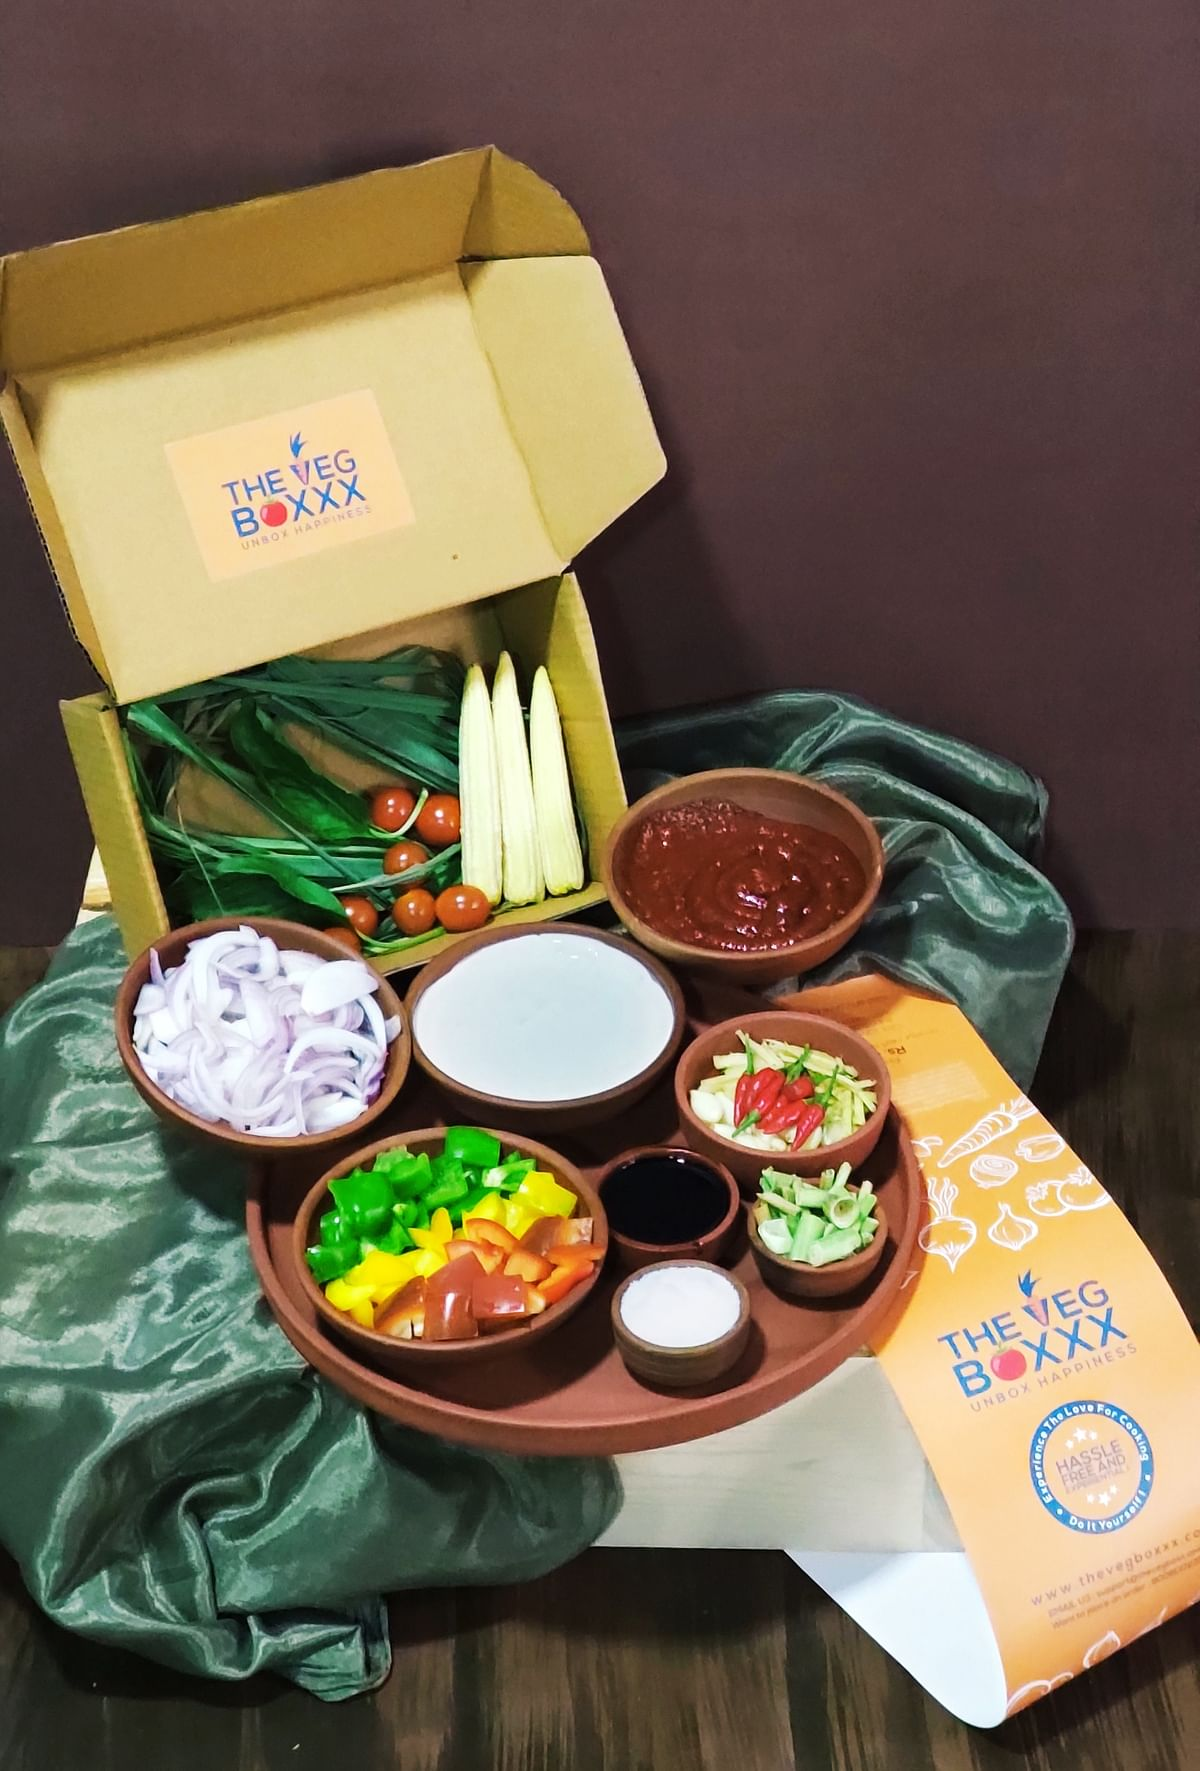 Happiness unboxed - The Veg Boxxx Meal KIt displaying ingredients for a Cook It Yourself meal